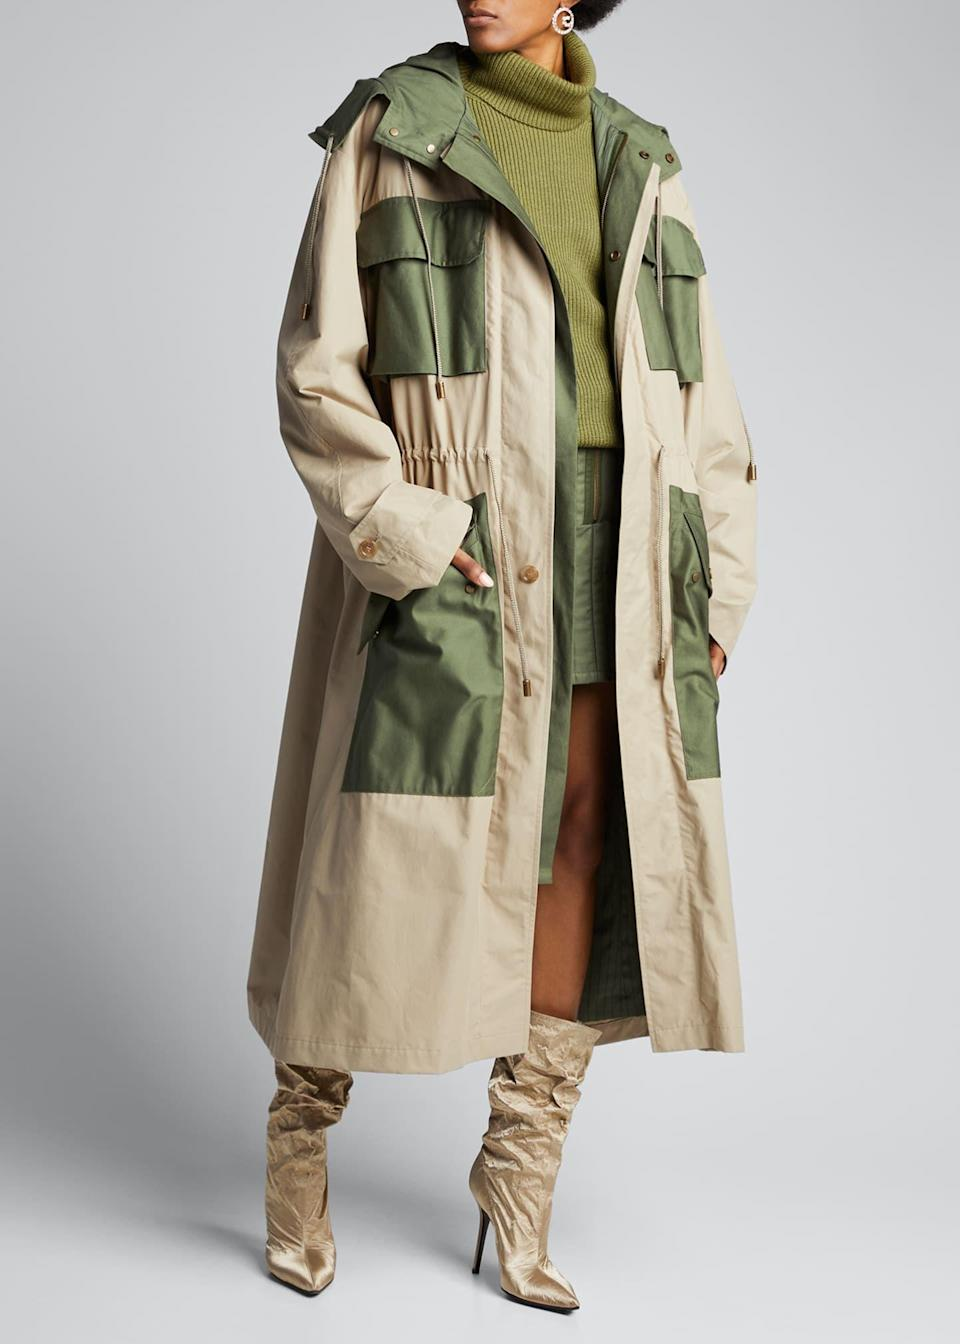 """<p><strong>Fenty</strong></p><p>https://www.bergdorfgoodman.com</p><p><strong>$1660.00</strong></p><p><a href=""""https://www.bergdorfgoodman.com/p/fenty-two-tone-oversized-trench-parka-prod155690036"""" rel=""""nofollow noopener"""" target=""""_blank"""" data-ylk=""""slk:Shop Now"""" class=""""link rapid-noclick-resp"""">Shop Now</a></p><p>Okay, I know this is pricey, but how could I not include?! The gorgeous two-tone colors and slightly roomy fit definitely makes this a """"wow"""" piece for a dreary day when you still want to look fab. </p>"""